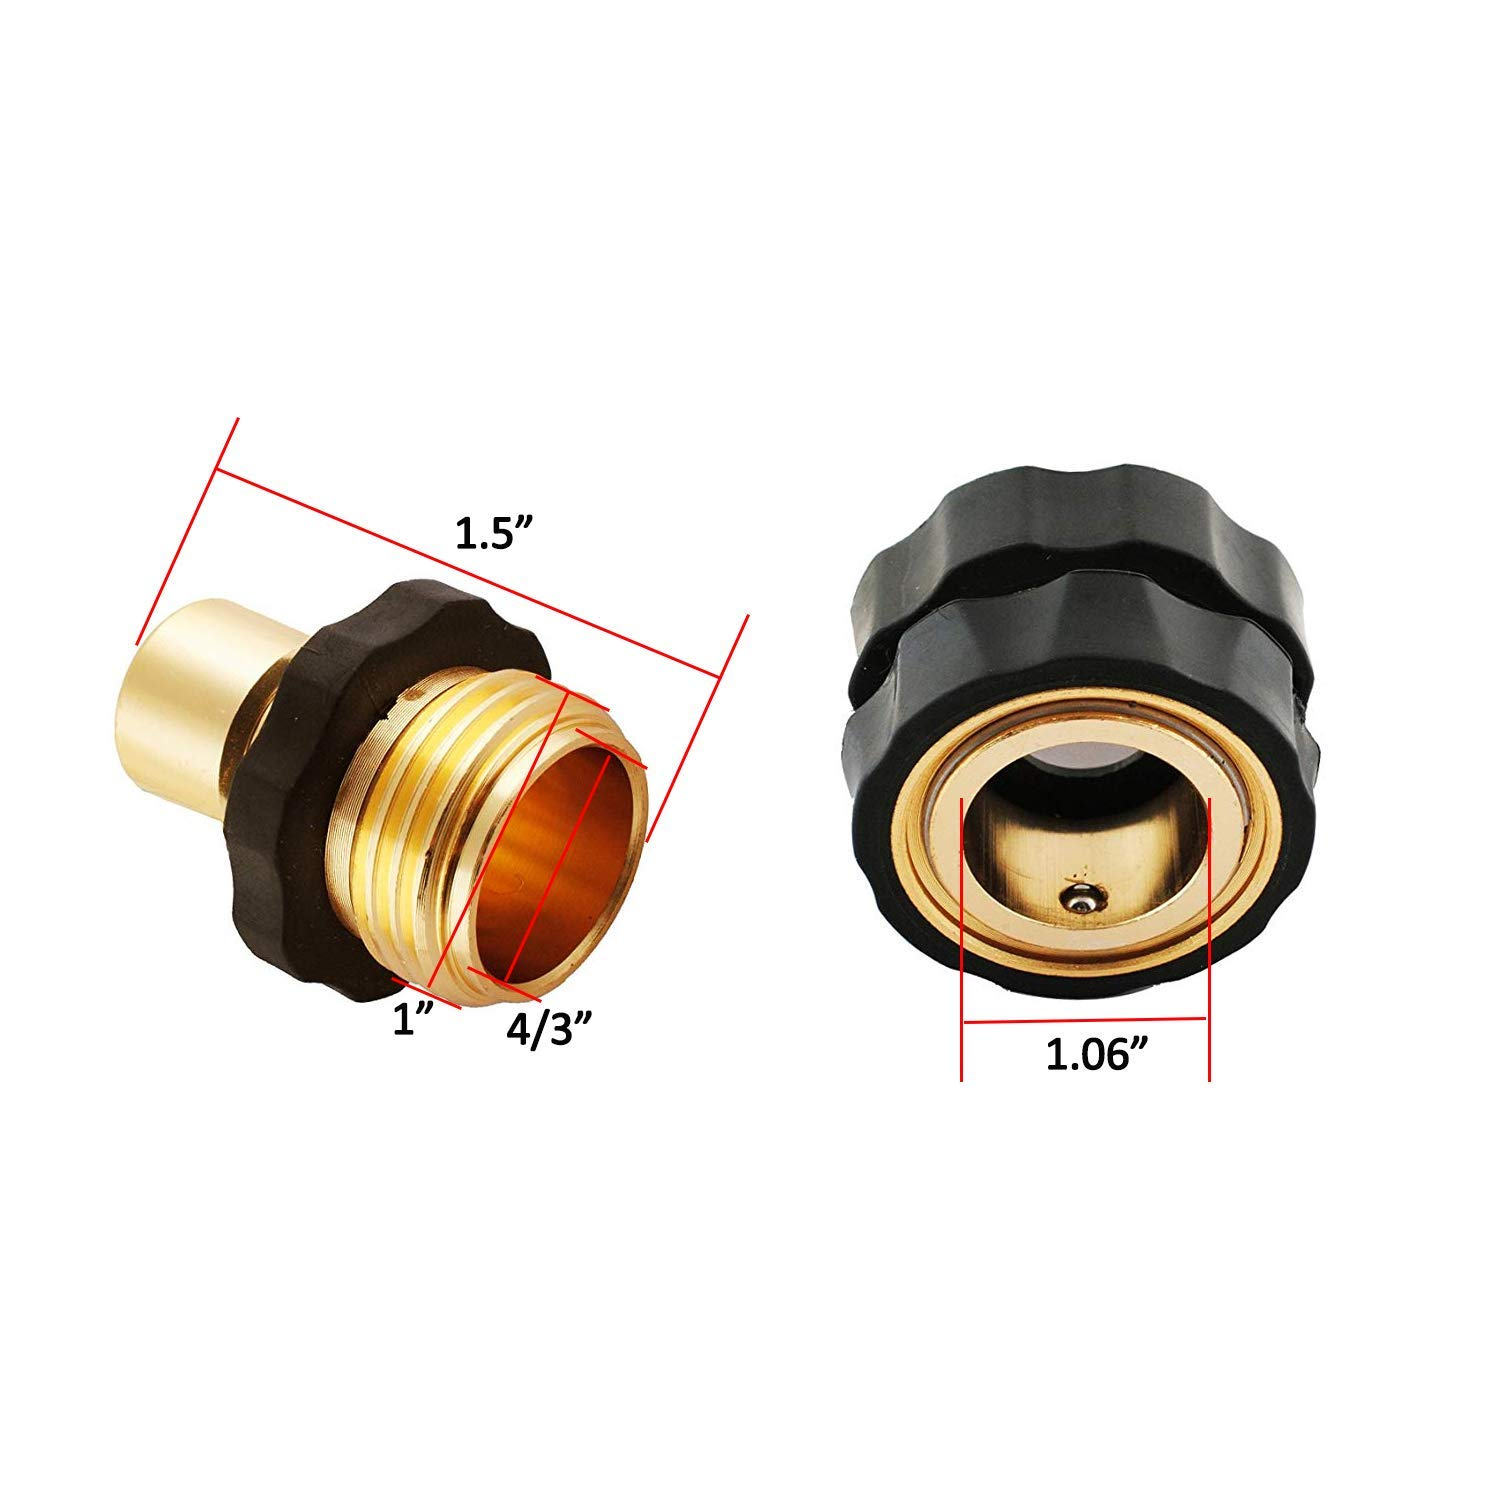 Water Hoses Quik Connect Release (3 Male Connects Wadoy Aluminum 3//4 Garden Hose Quick Connector 3 Female Connects)